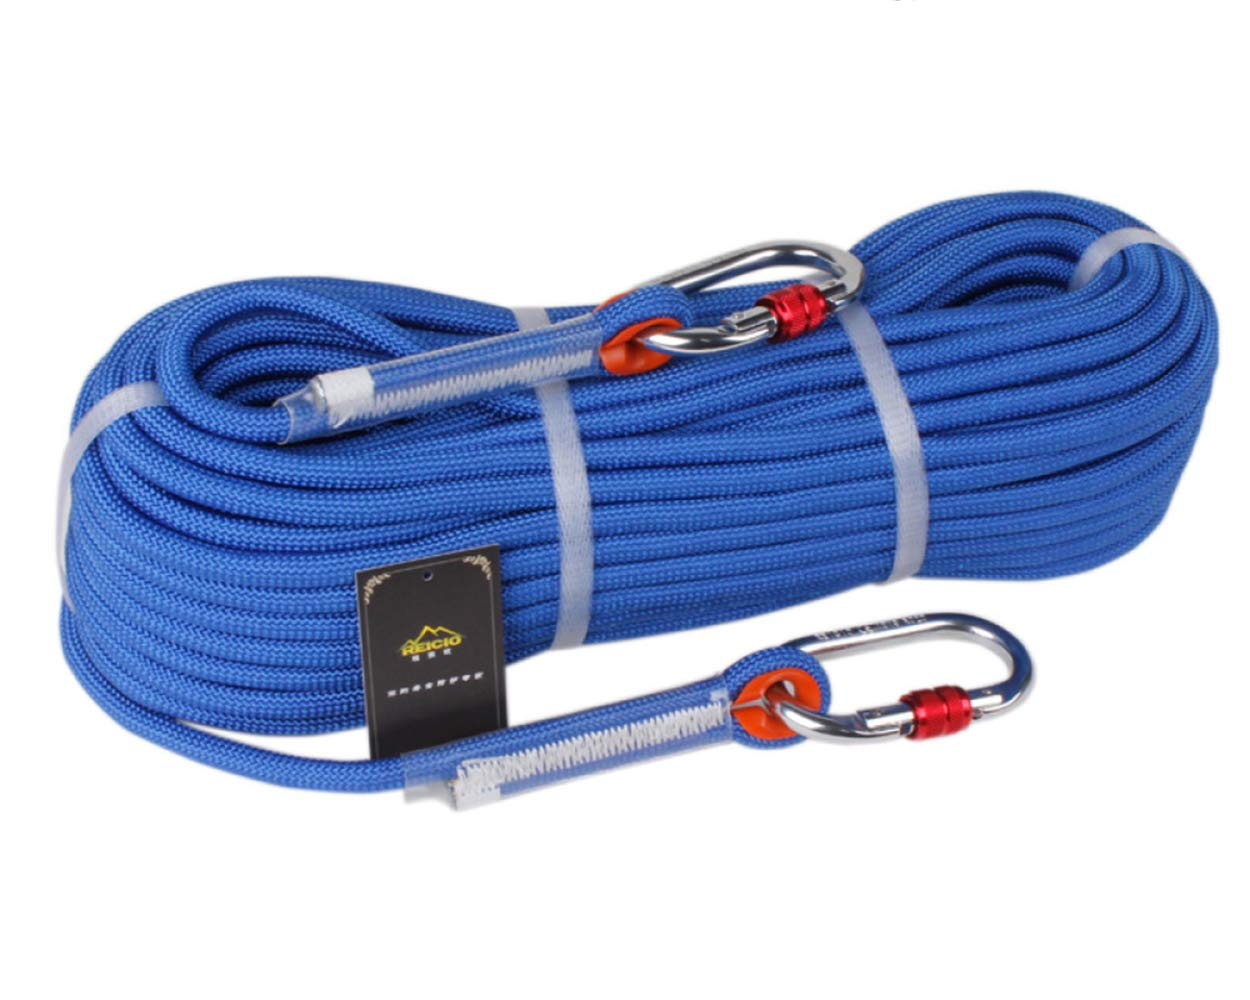 bluee 12.5mm10m Outdoor Climbing HighAltitude Camping Wear Safety Rope10.5   12mm,bluee12.5mm10m